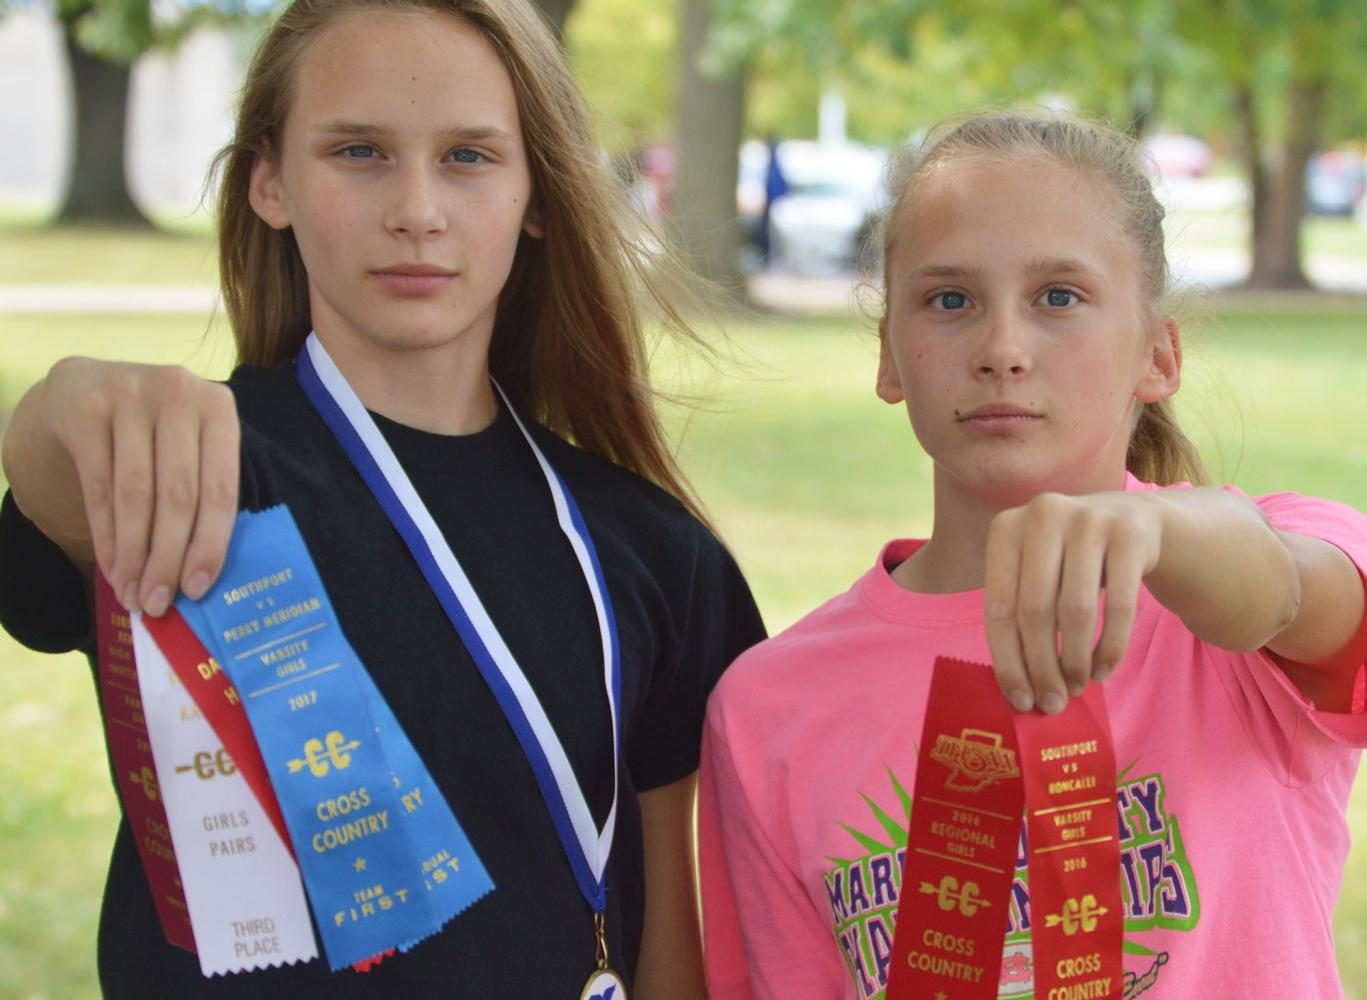 Lexie+%28left%29+and+Bella+%28right%29+Green+hold+up+ribbons+they+have+won+in+cross+country.